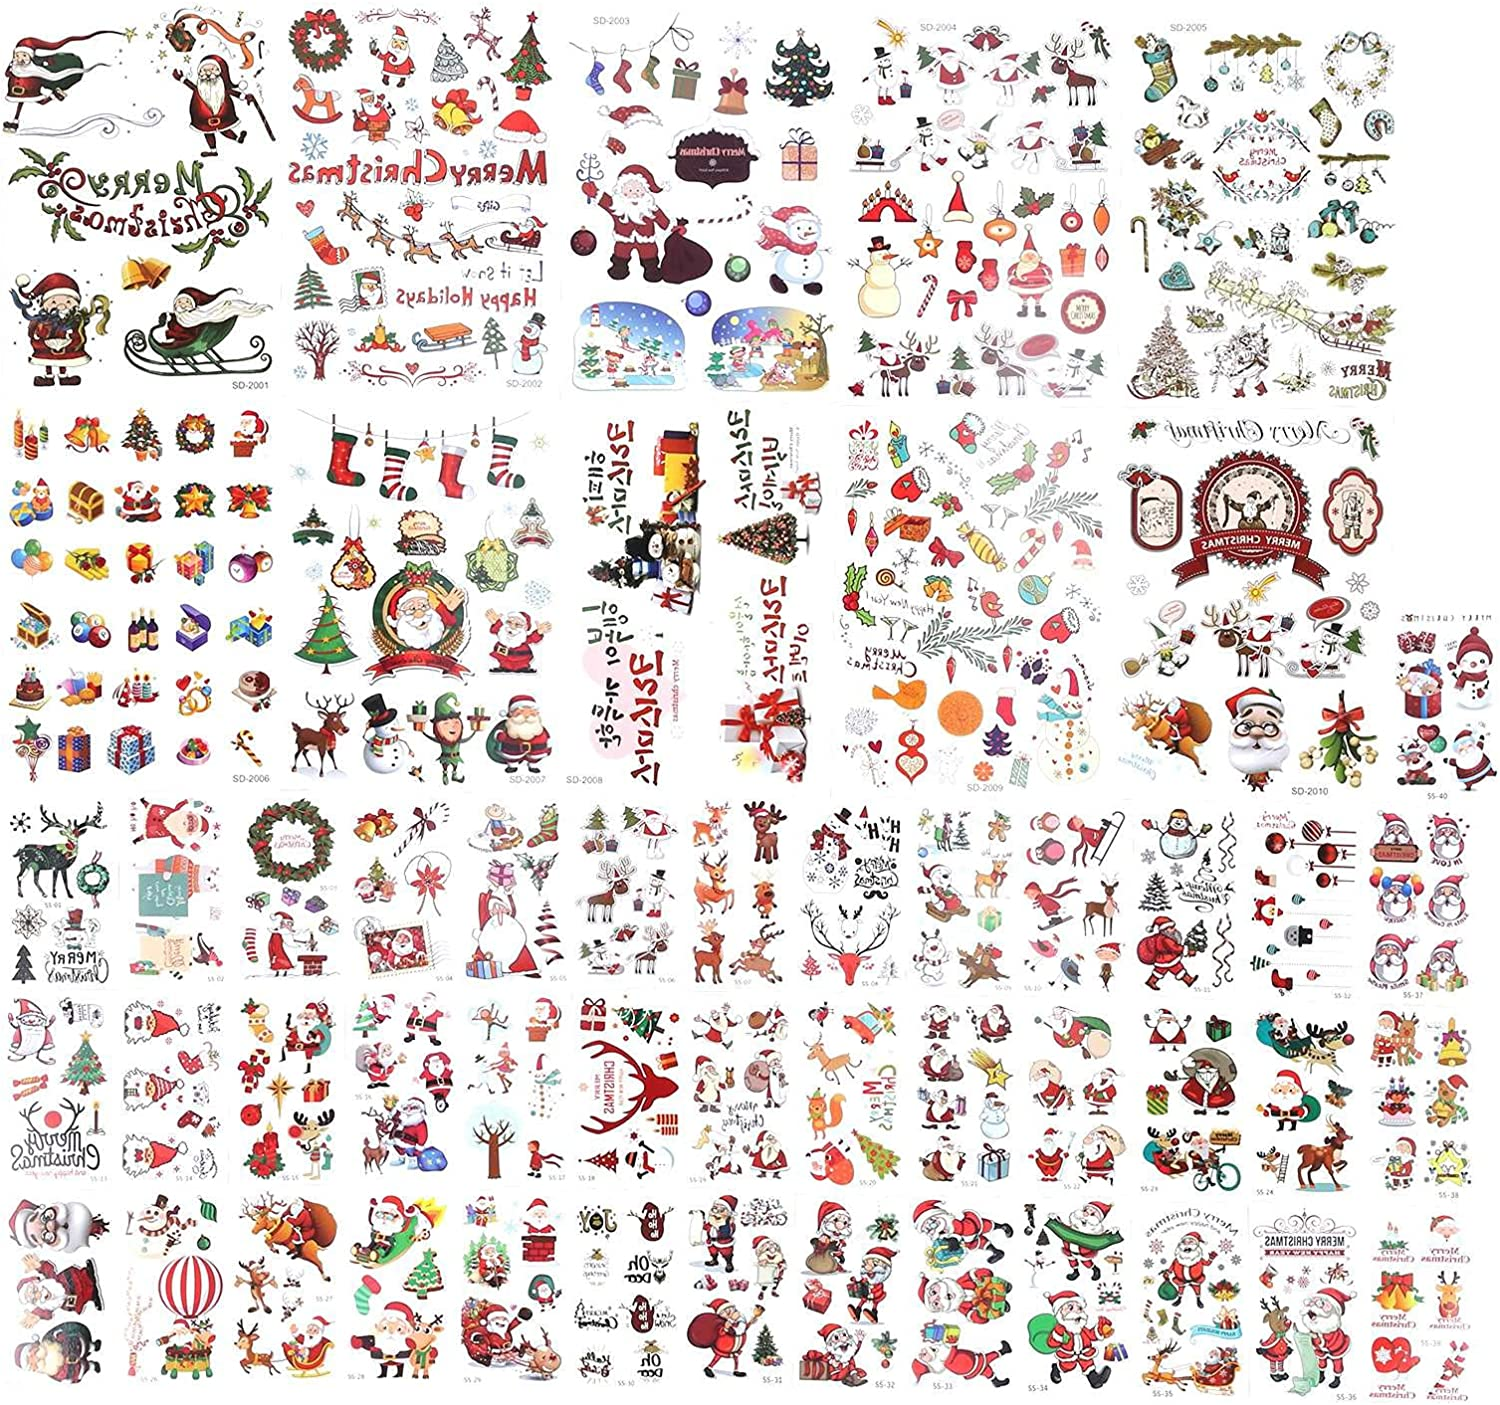 Deror Tattoo Stickers Don't miss the campaign Max 75% OFF 50pcs Santa Waterp Temporary Tattoos Claus